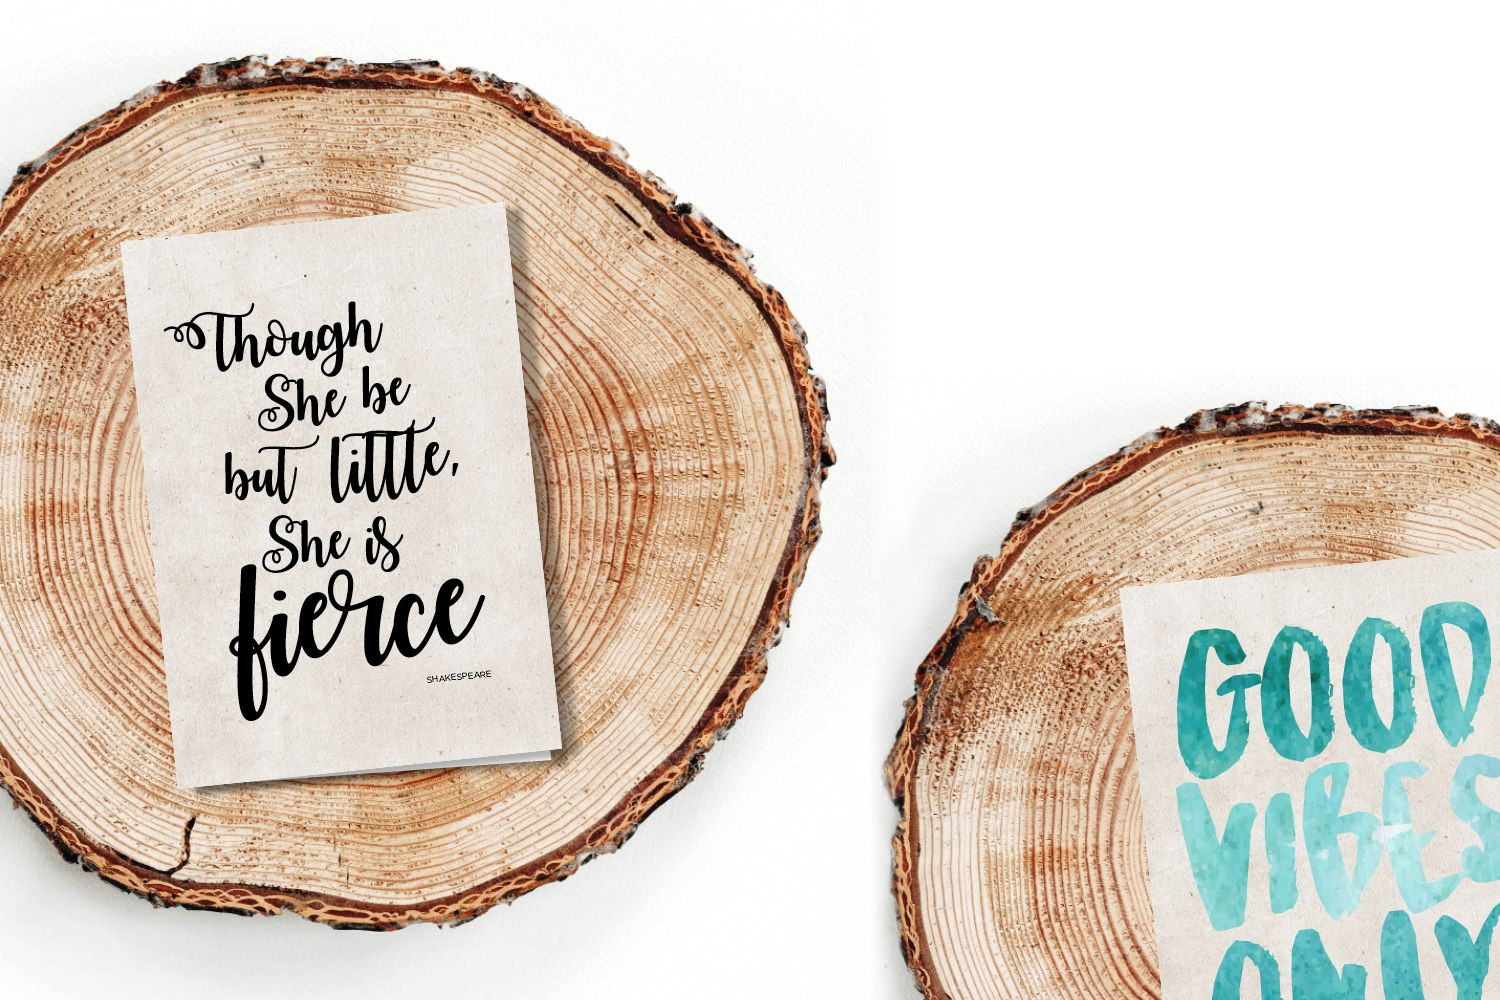 Why fit in when you were born to stand out - cards, prints and gifts